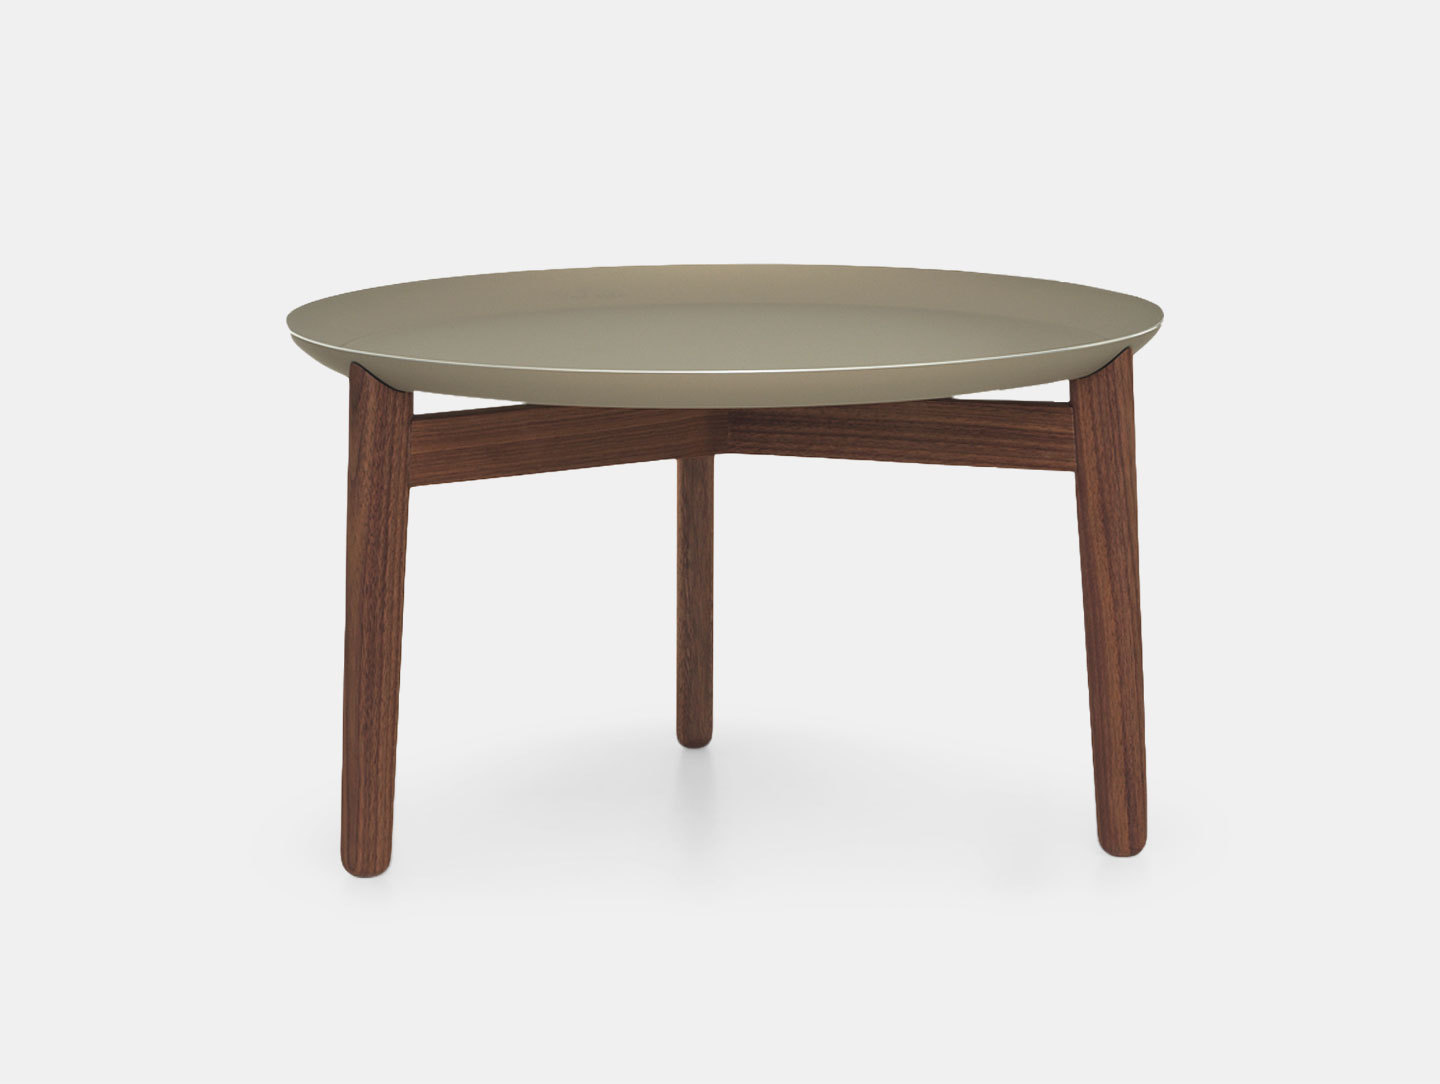 Zeitraum Plaisir Table Walnut Grey Top Dia54 H32 Formstelle